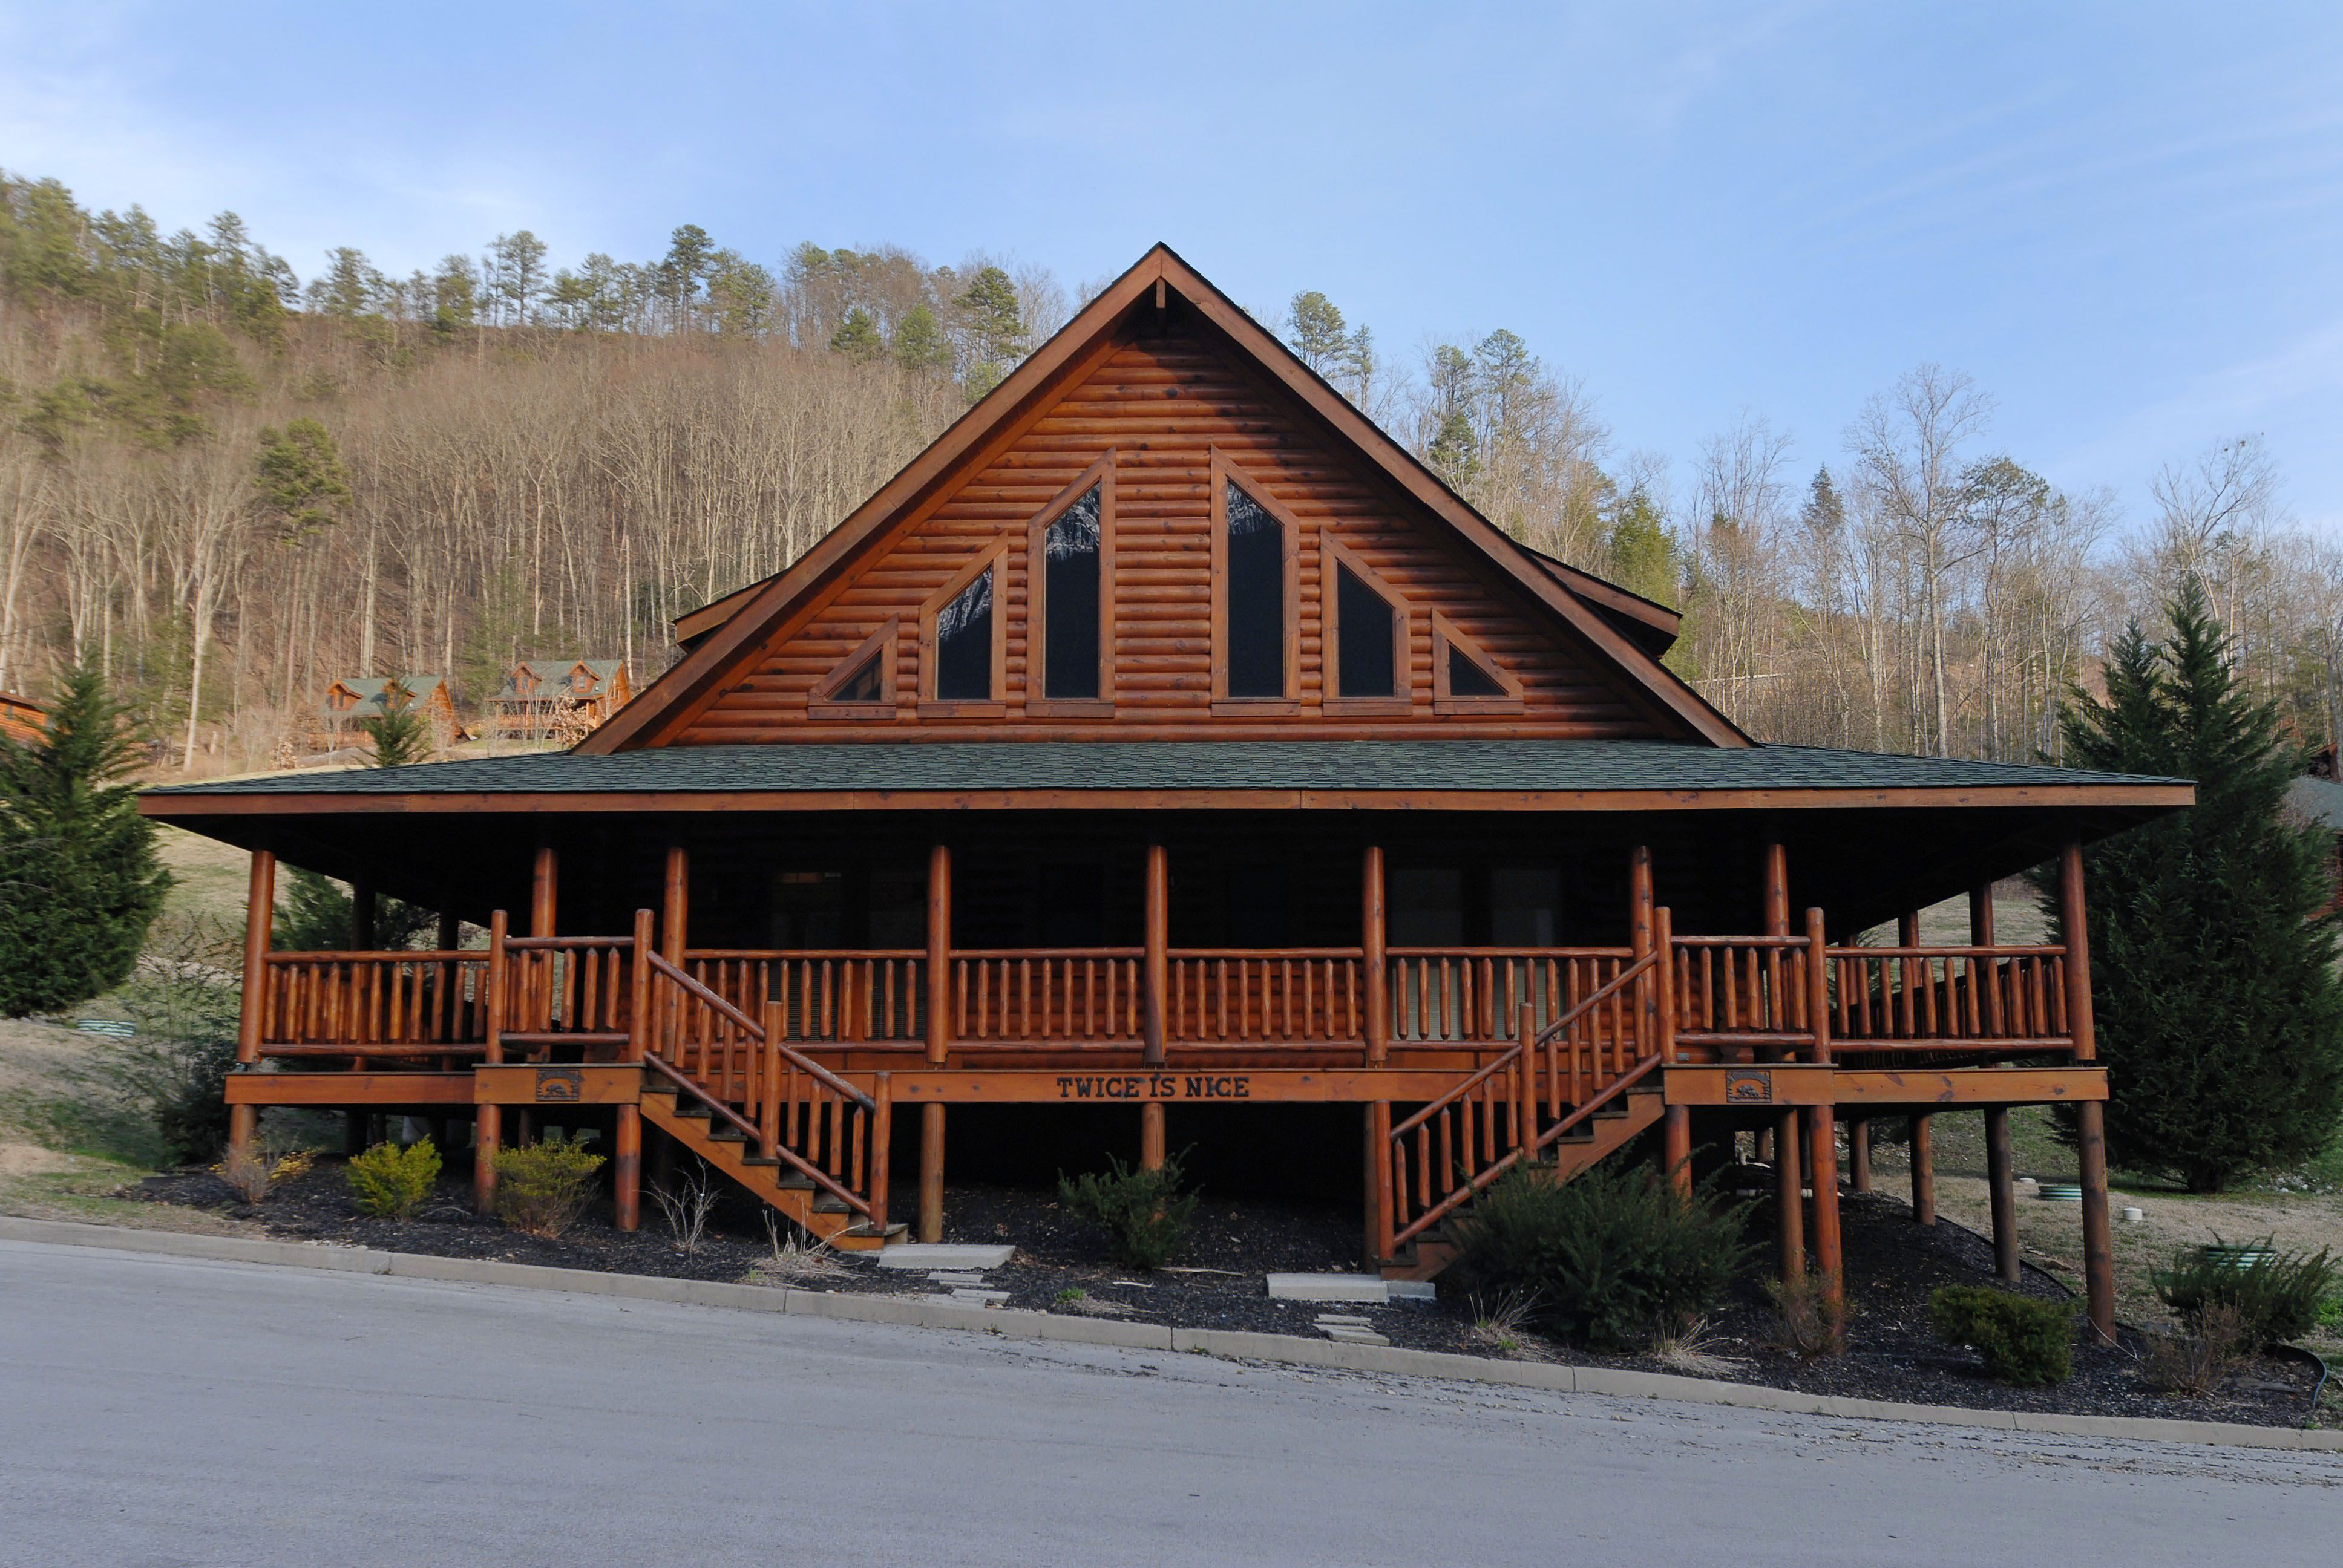 Twice Is Nice Wears Valley Cabins Sleeps 7 12 Fireside Chalets Cabin Log Cabin Rentals Smoky Mountains